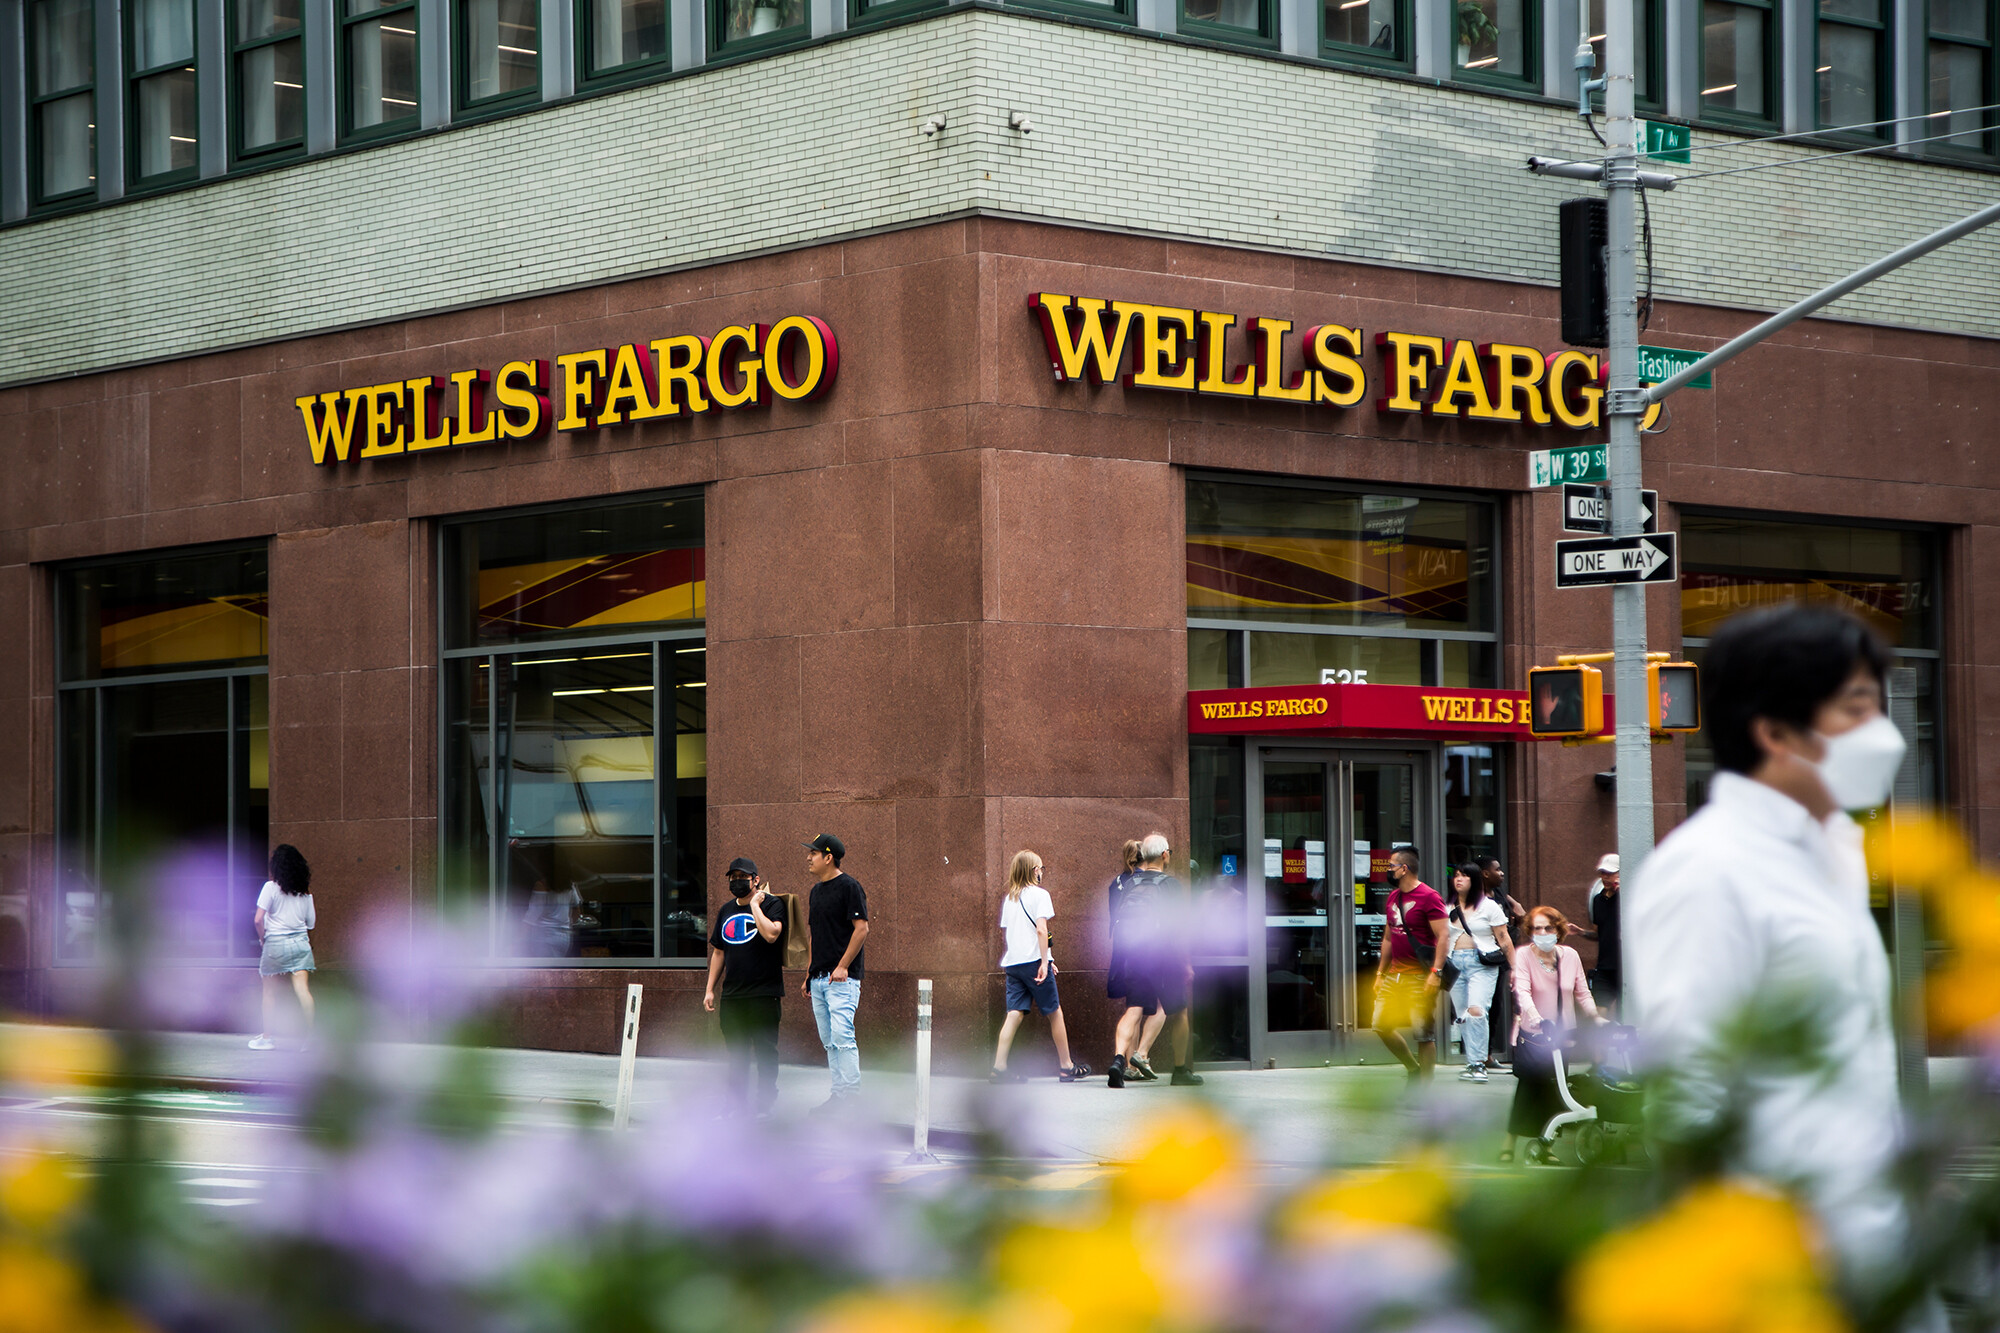 <i>Pablo Monsalve/VIEWpress/Getty Images</i><br/>Wells Fargo's third-quarter earnings were up 59% after it freed up money it had set aside to cover loan losses.